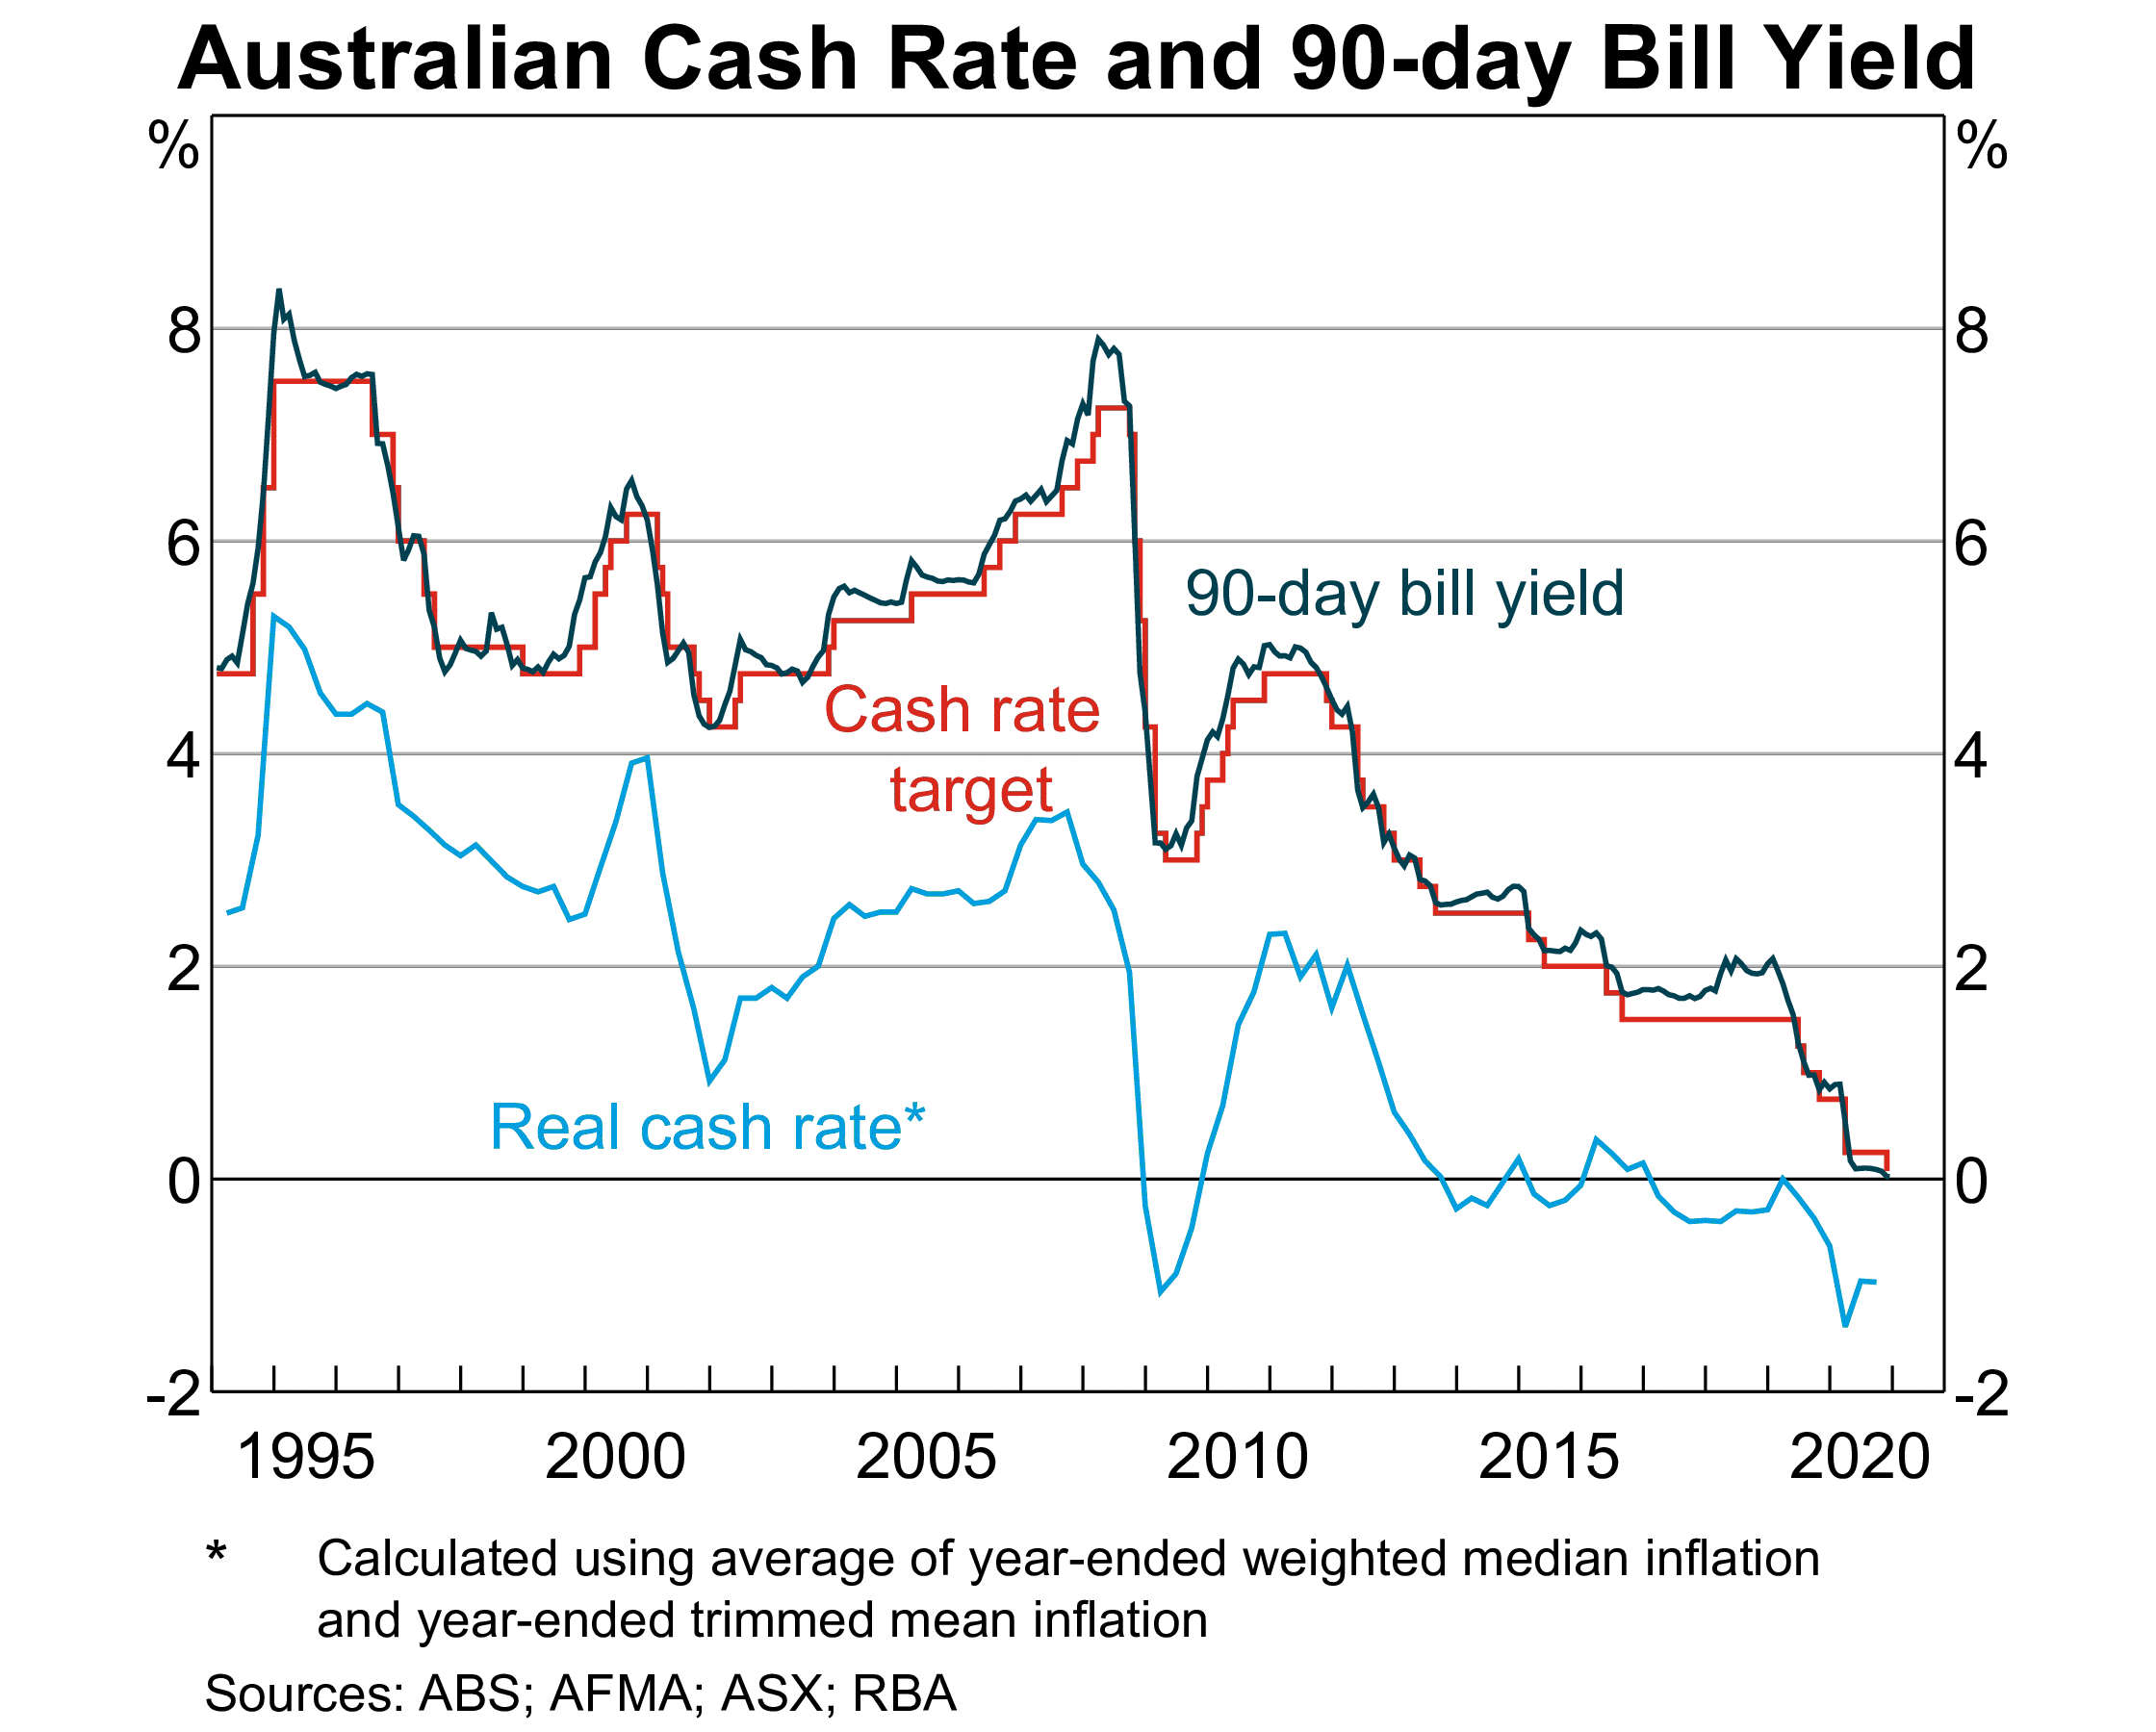 Australian cash rate and 90 day bill yield